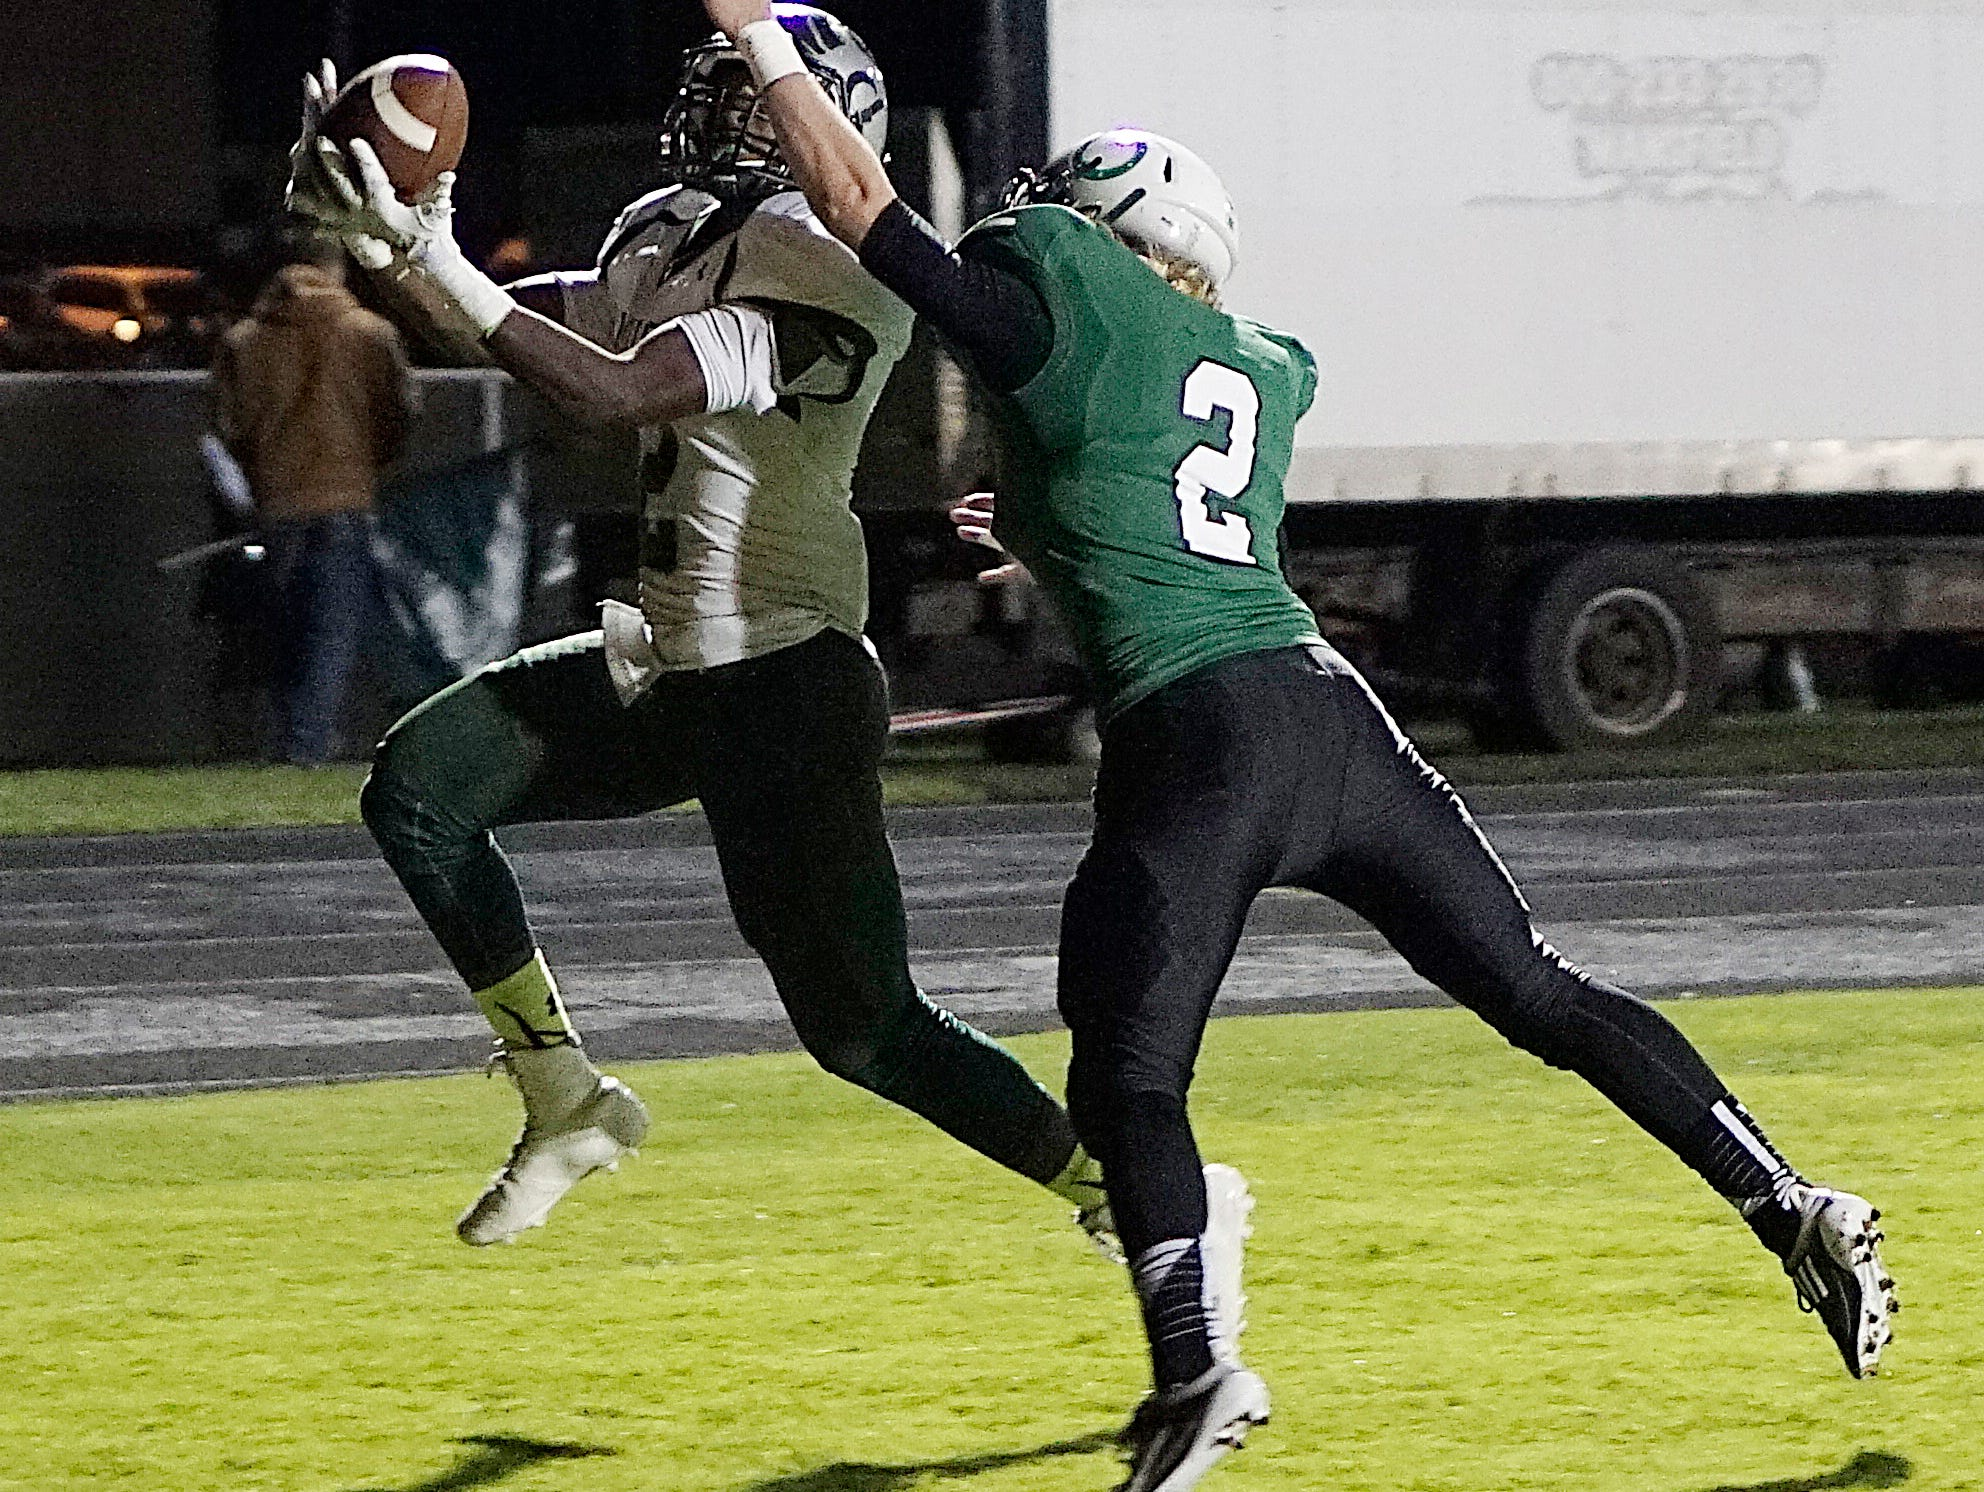 Madison's Tyrell Ajian catches a TD pass during the second quarter of their game against the Colts at Clear Fork High School.